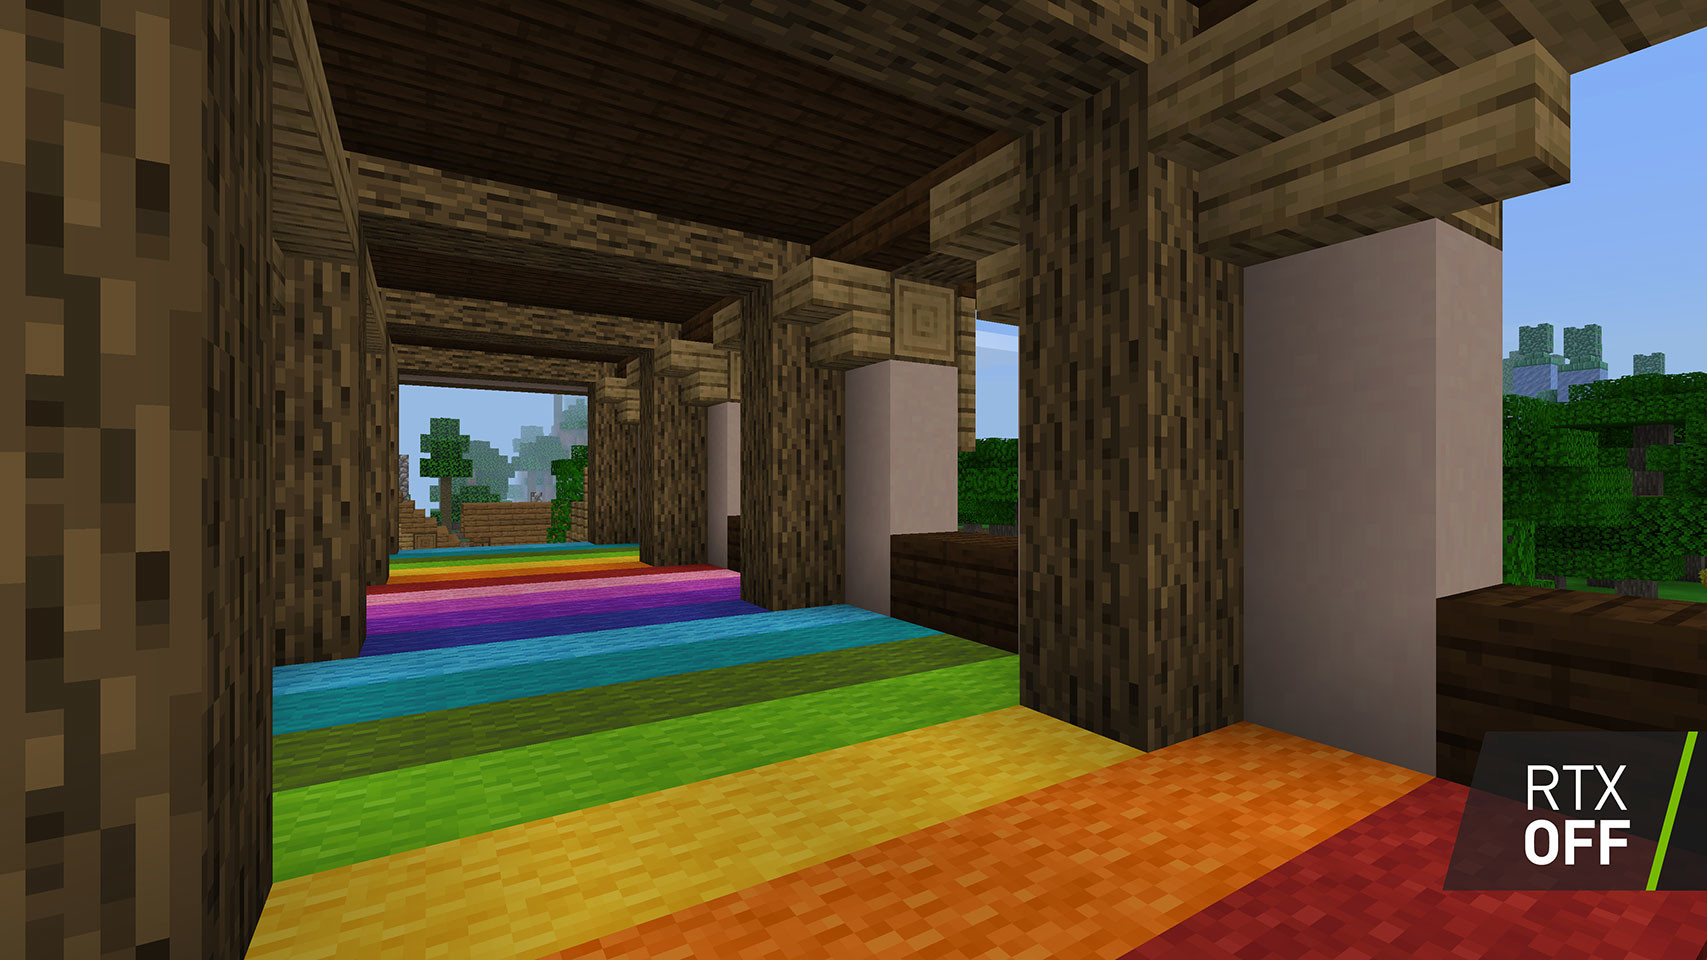 Minecraft to Get NVIDIA RTX Ray-tracing Support | TechPowerUp